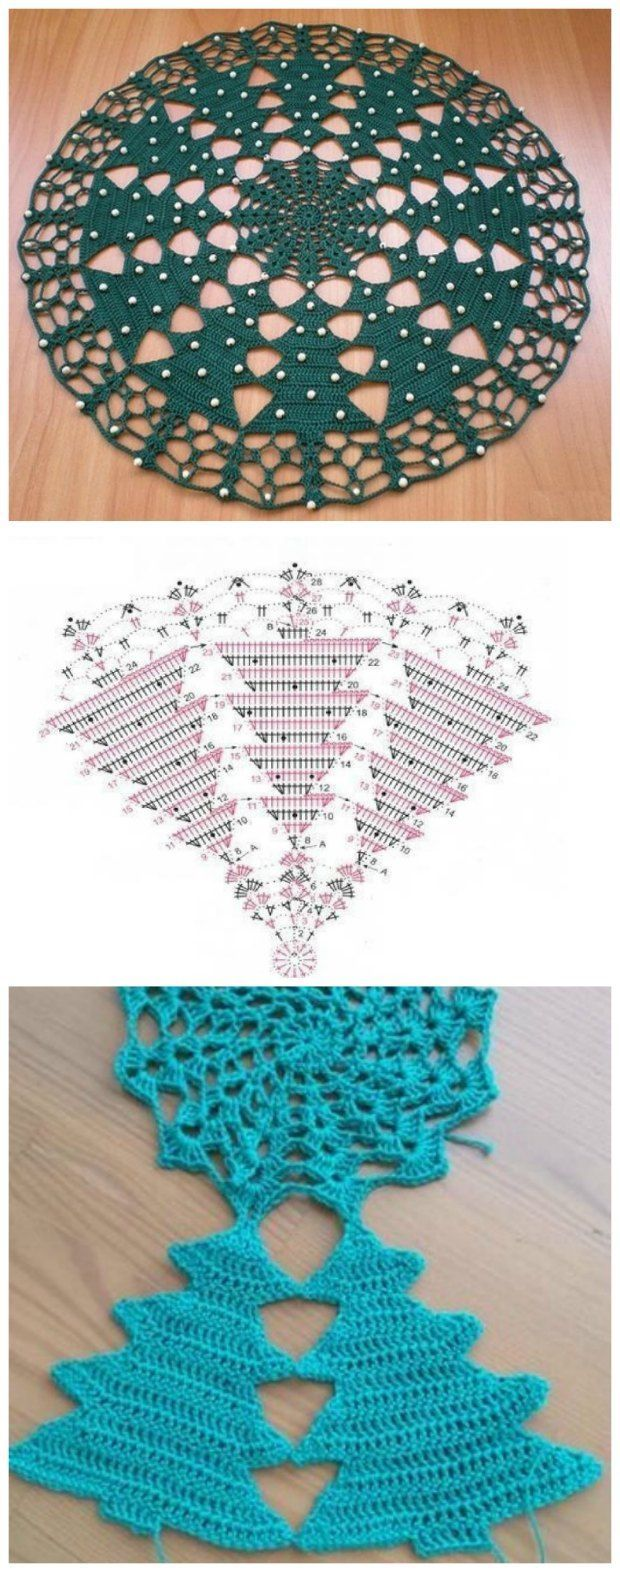 Crochet A Christmas Tree Doily Advanced Pattern Diagram Only No Written Instructions